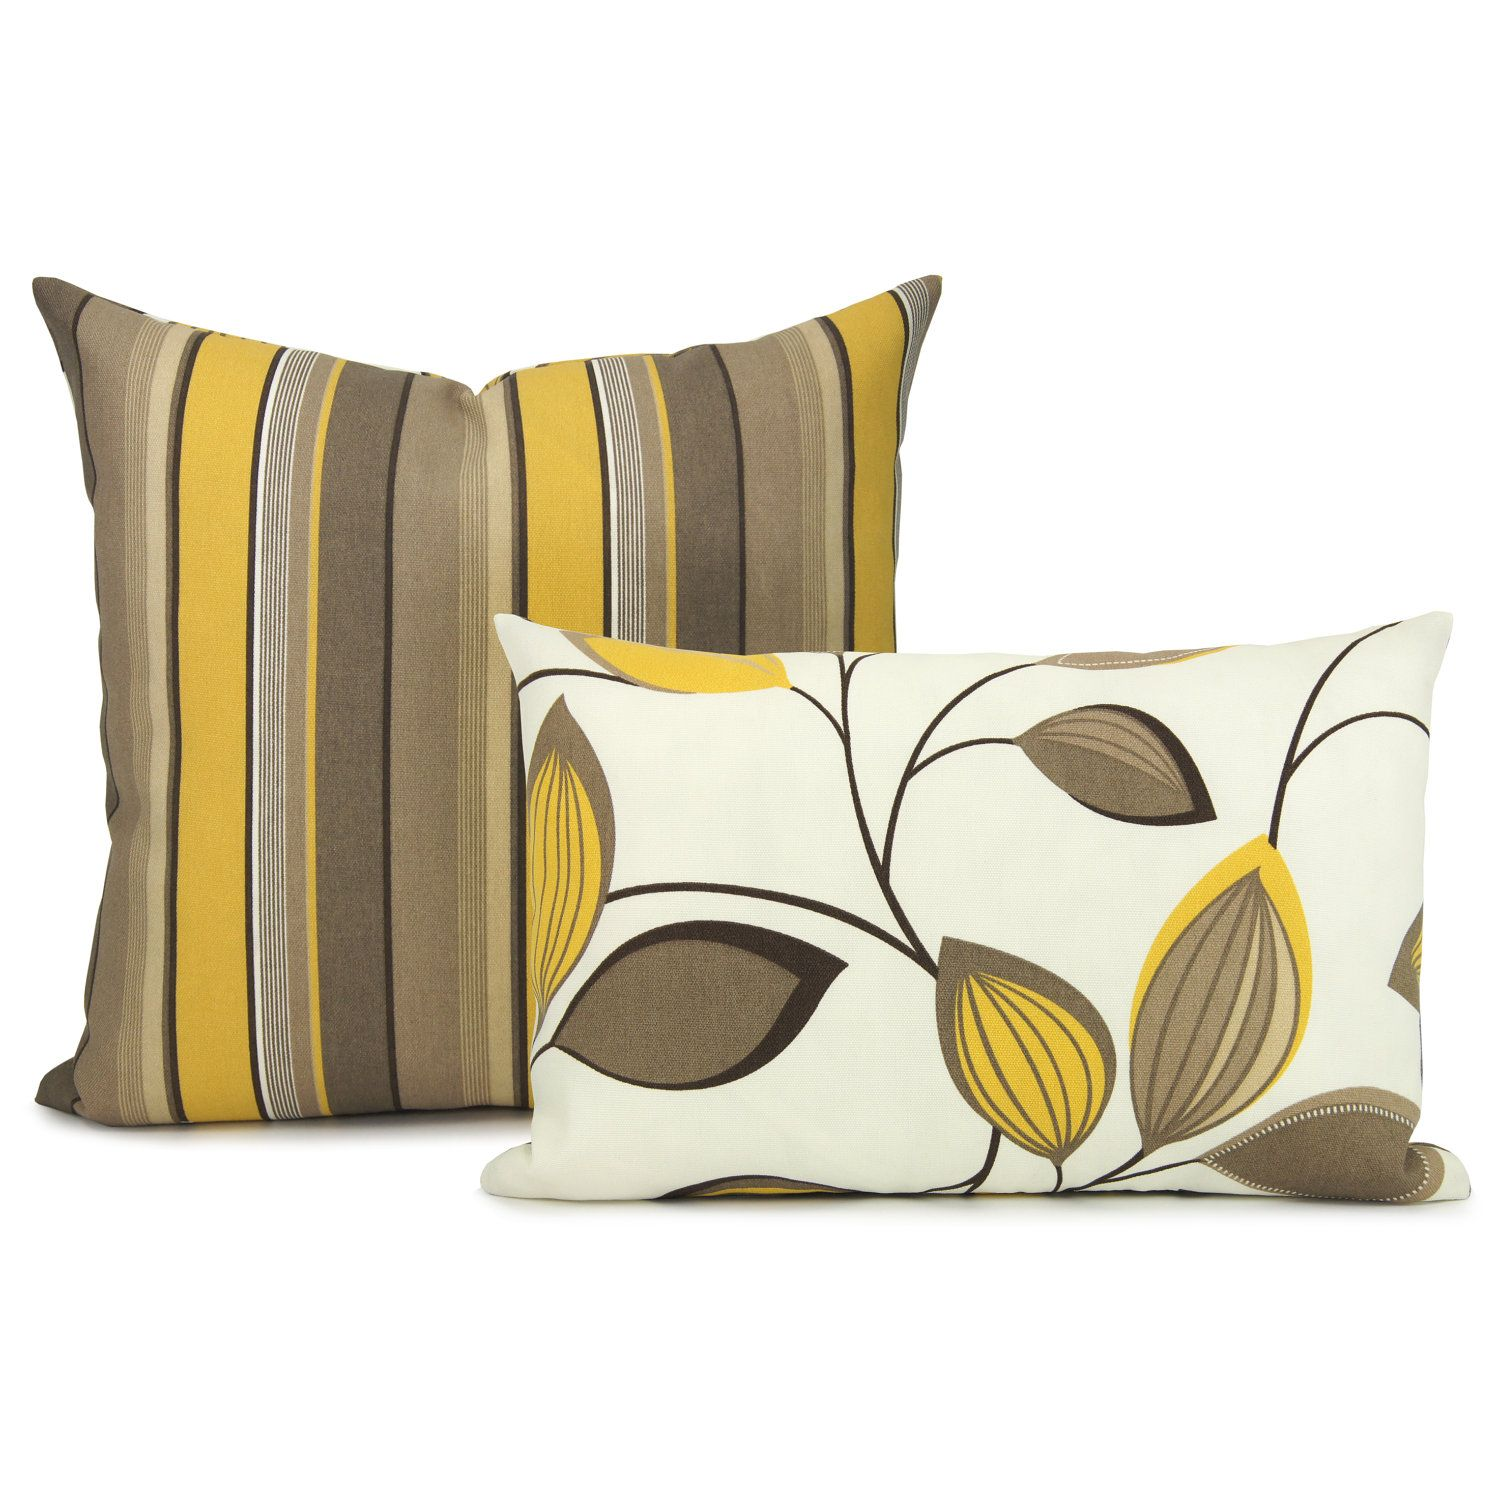 Yellow Brown Throw Pillows : Outdoor pillow cover - Mustard yellow, brown and cream vine and stripe print reversible outdoor ...